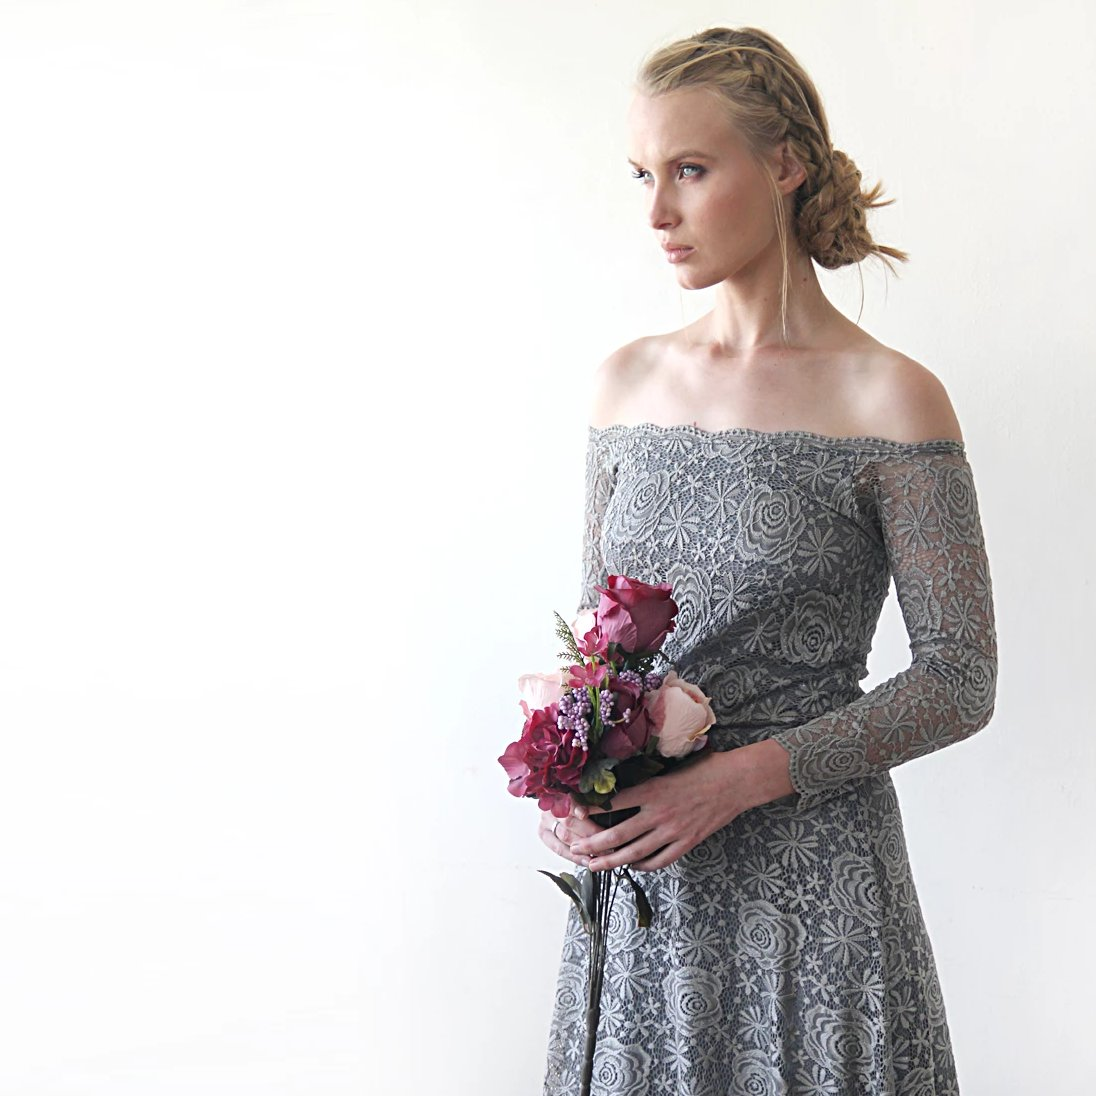 Grey lace Gown, Bridesmaids Lace Dress, Off Shoulder Maxi Dress, Grey Wedding Dress, Long Sleeves Boho Style Lace Dress 1119 - Blushfashion